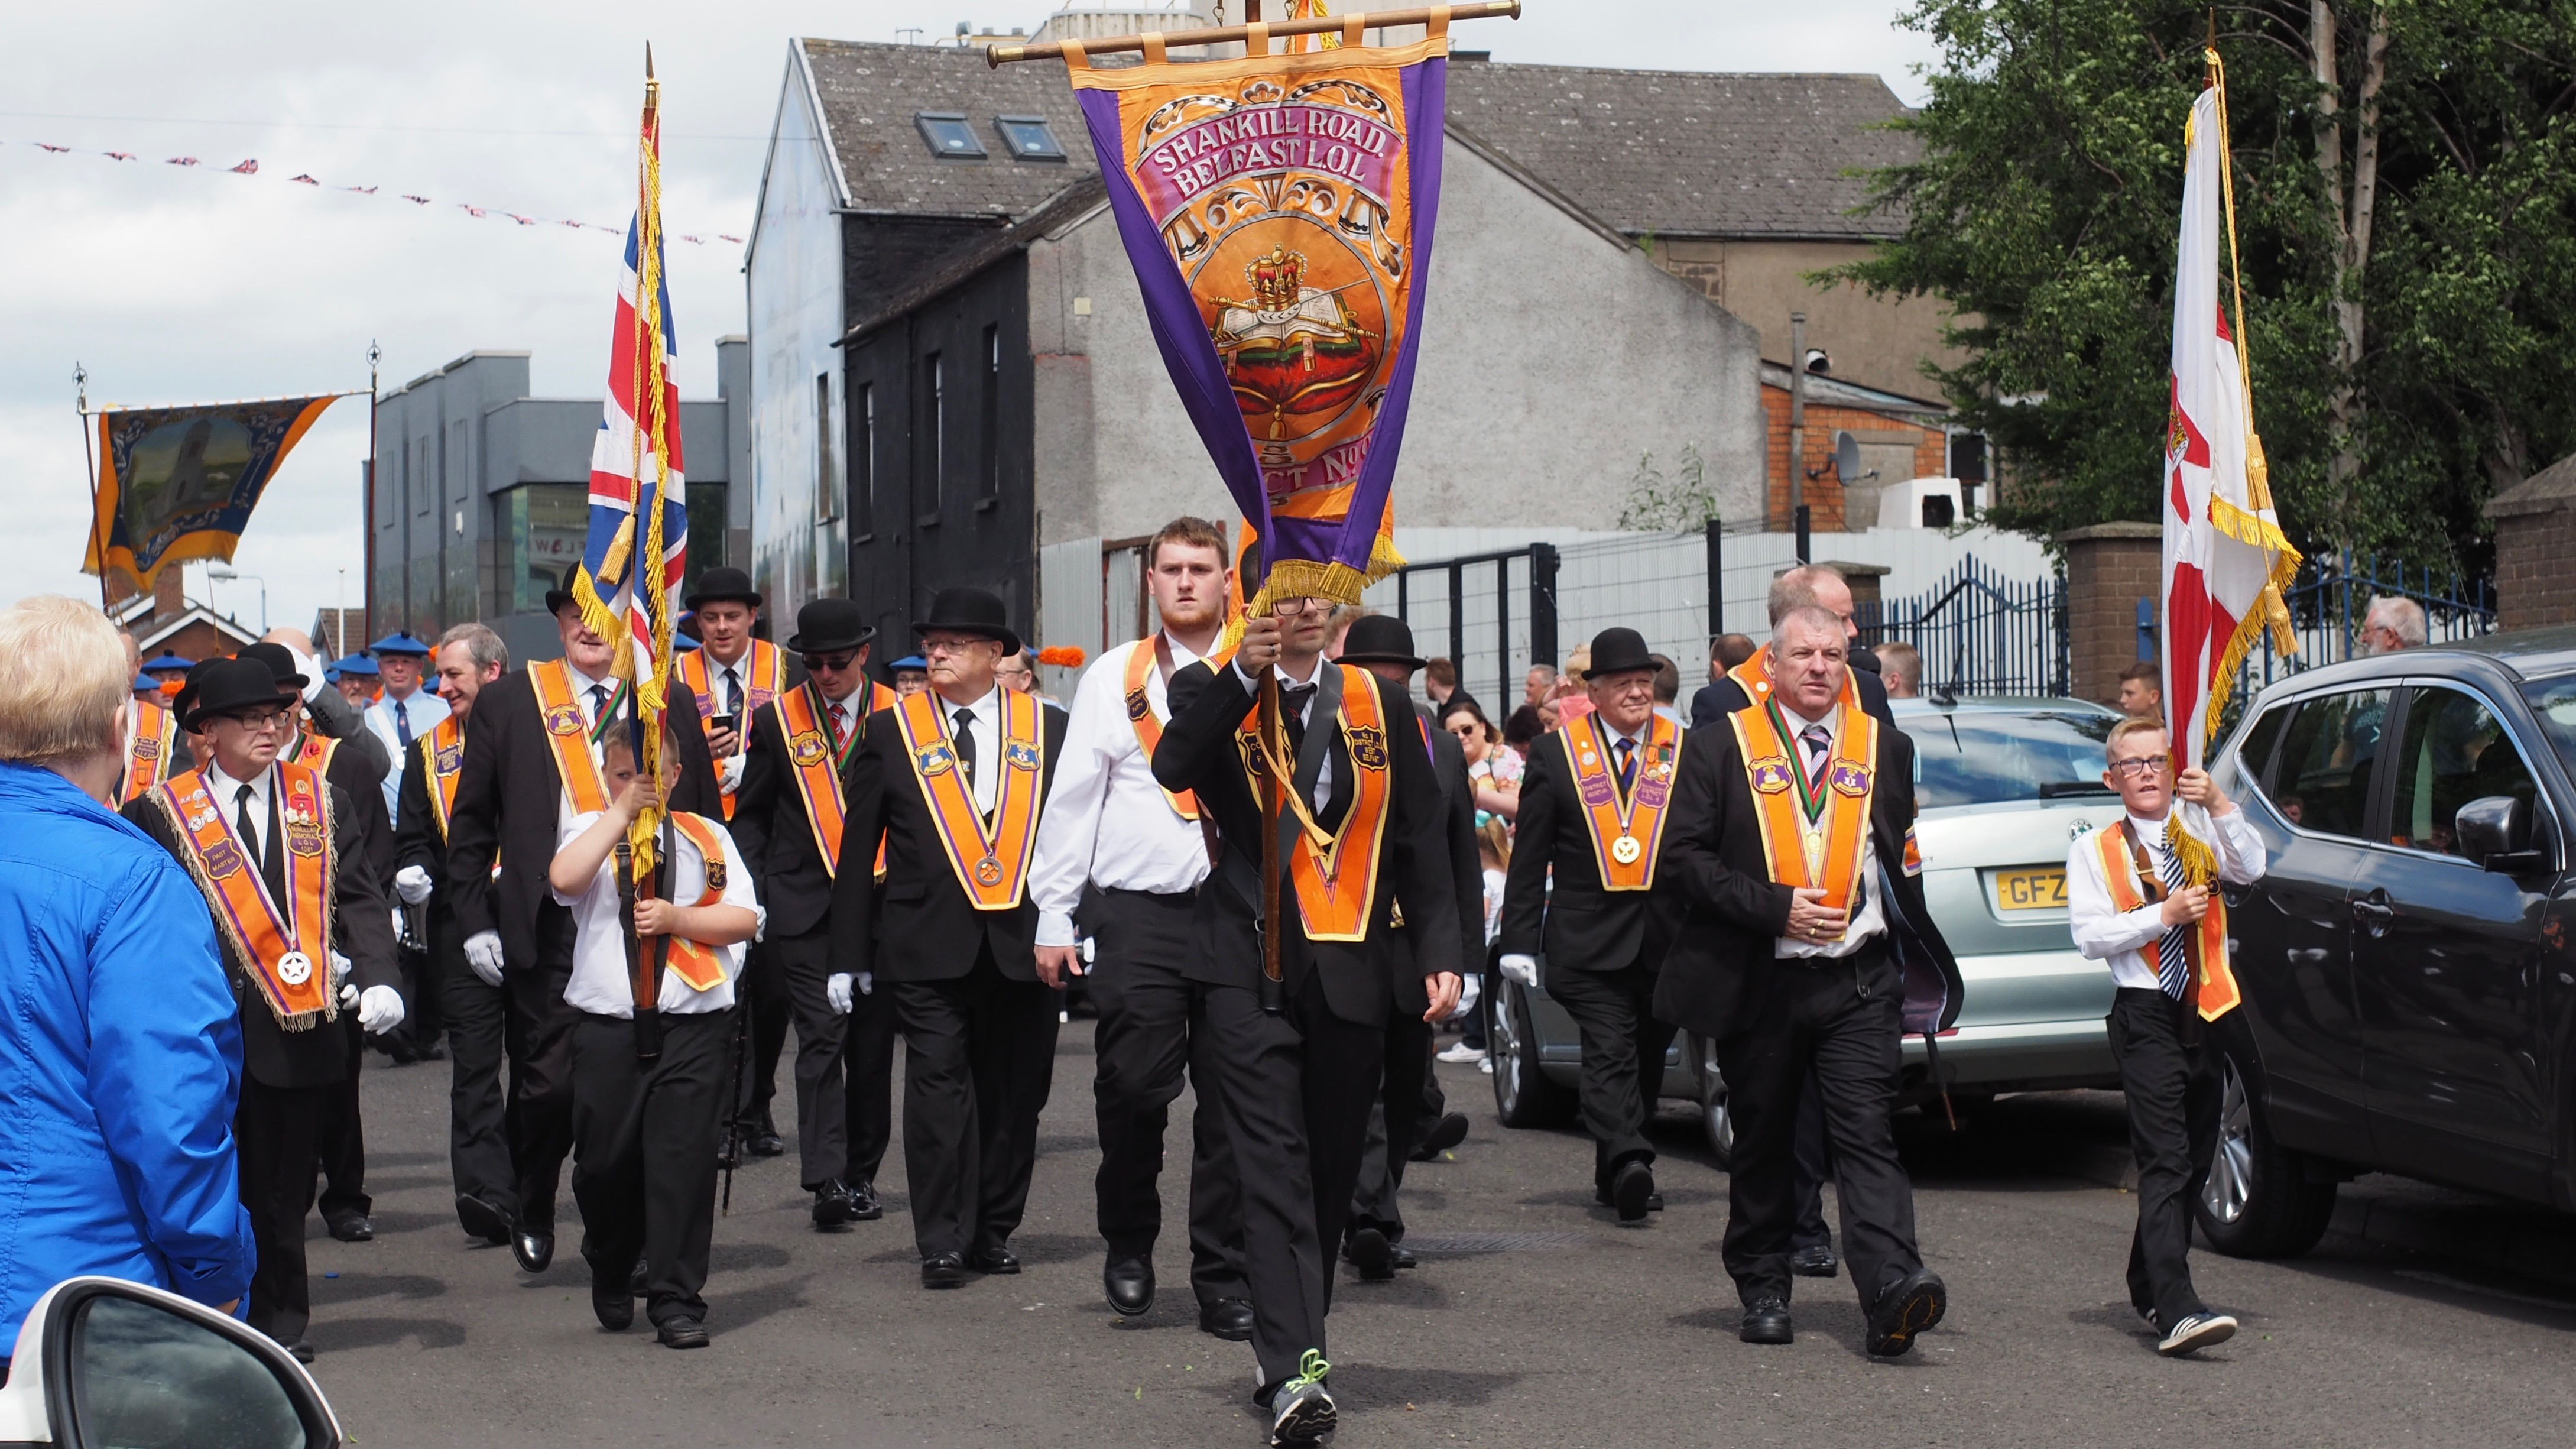 Orangemen march down Conway Street, off Shankill Road, in Belfast.